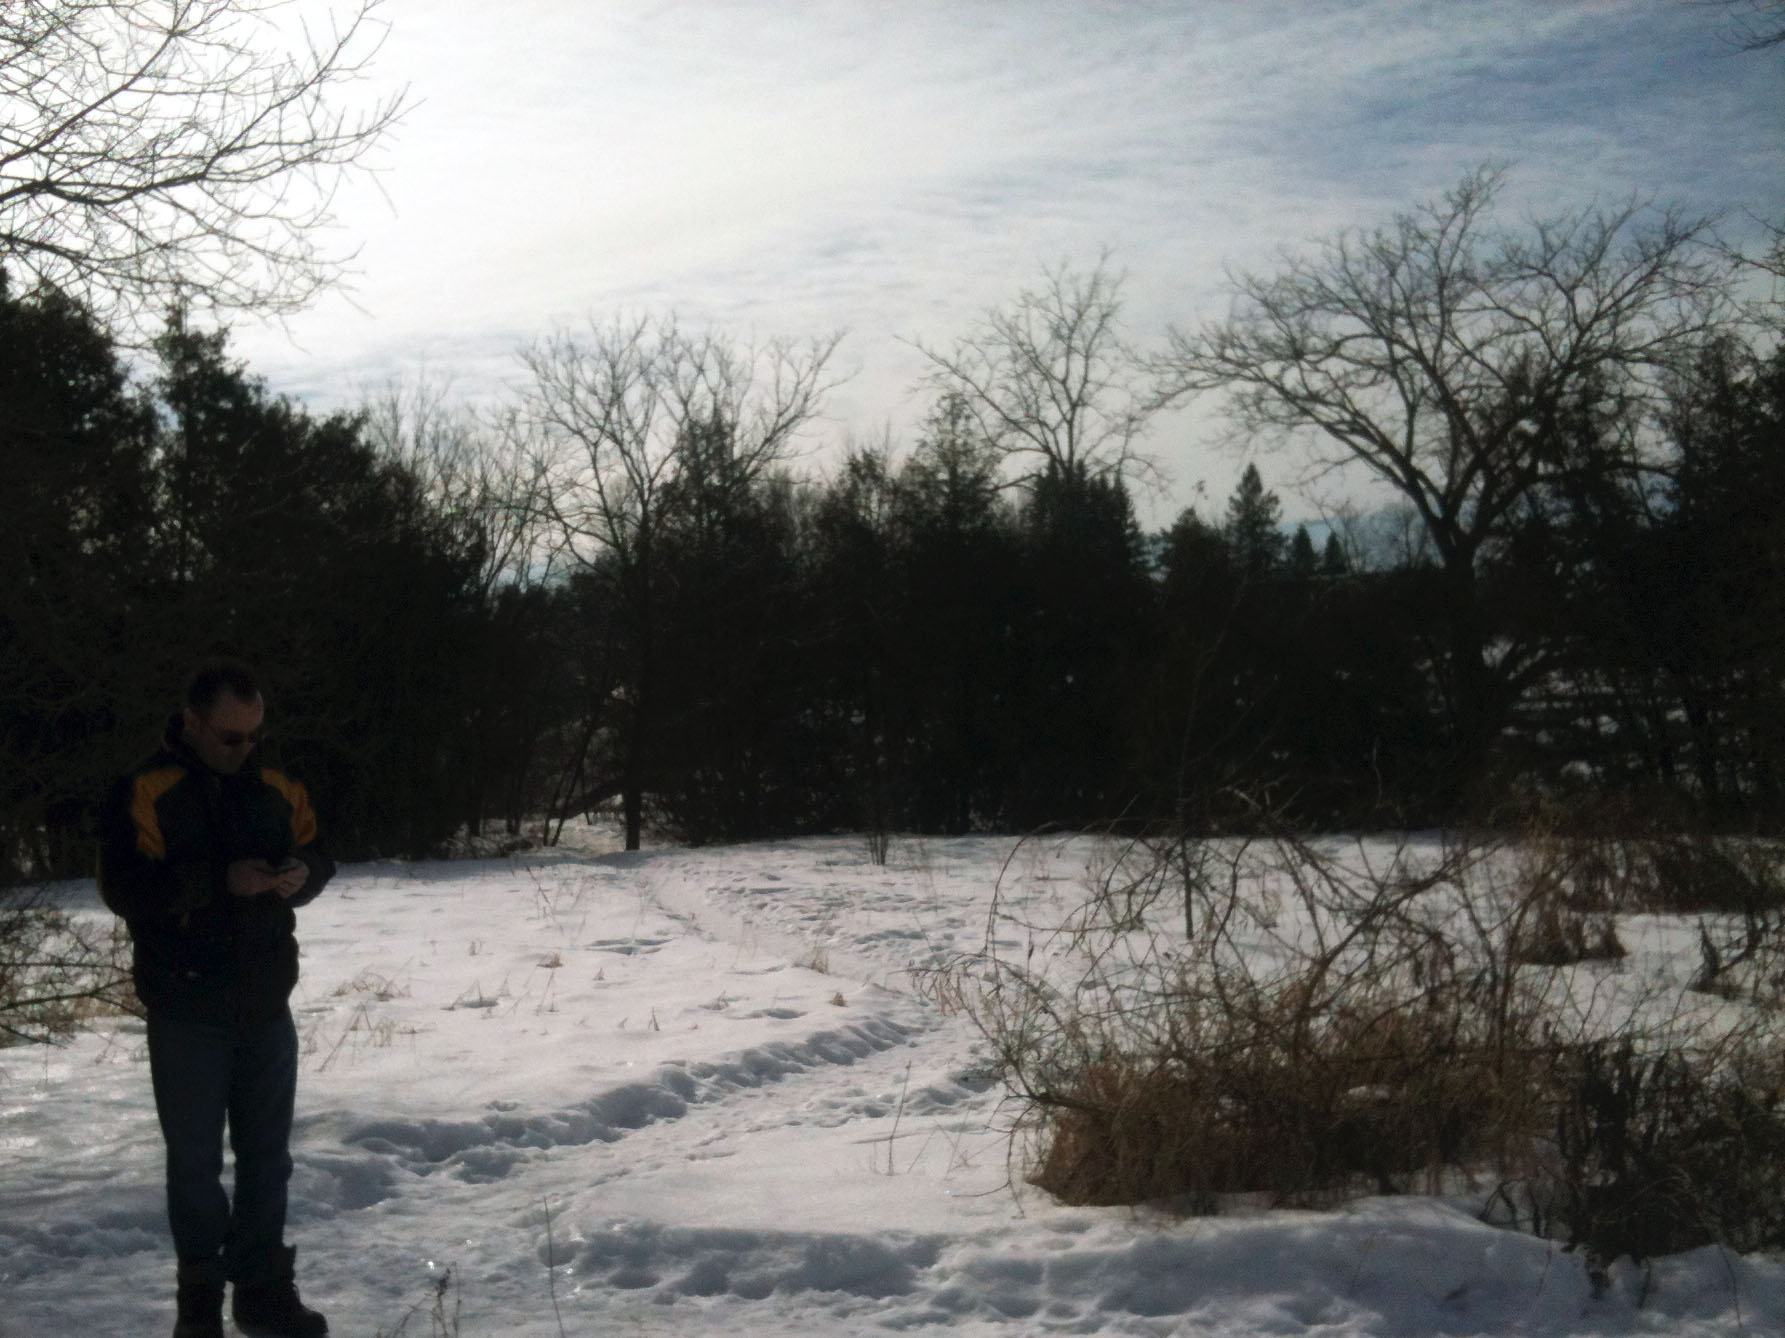 Morgana and her father scouting locations in February 2012